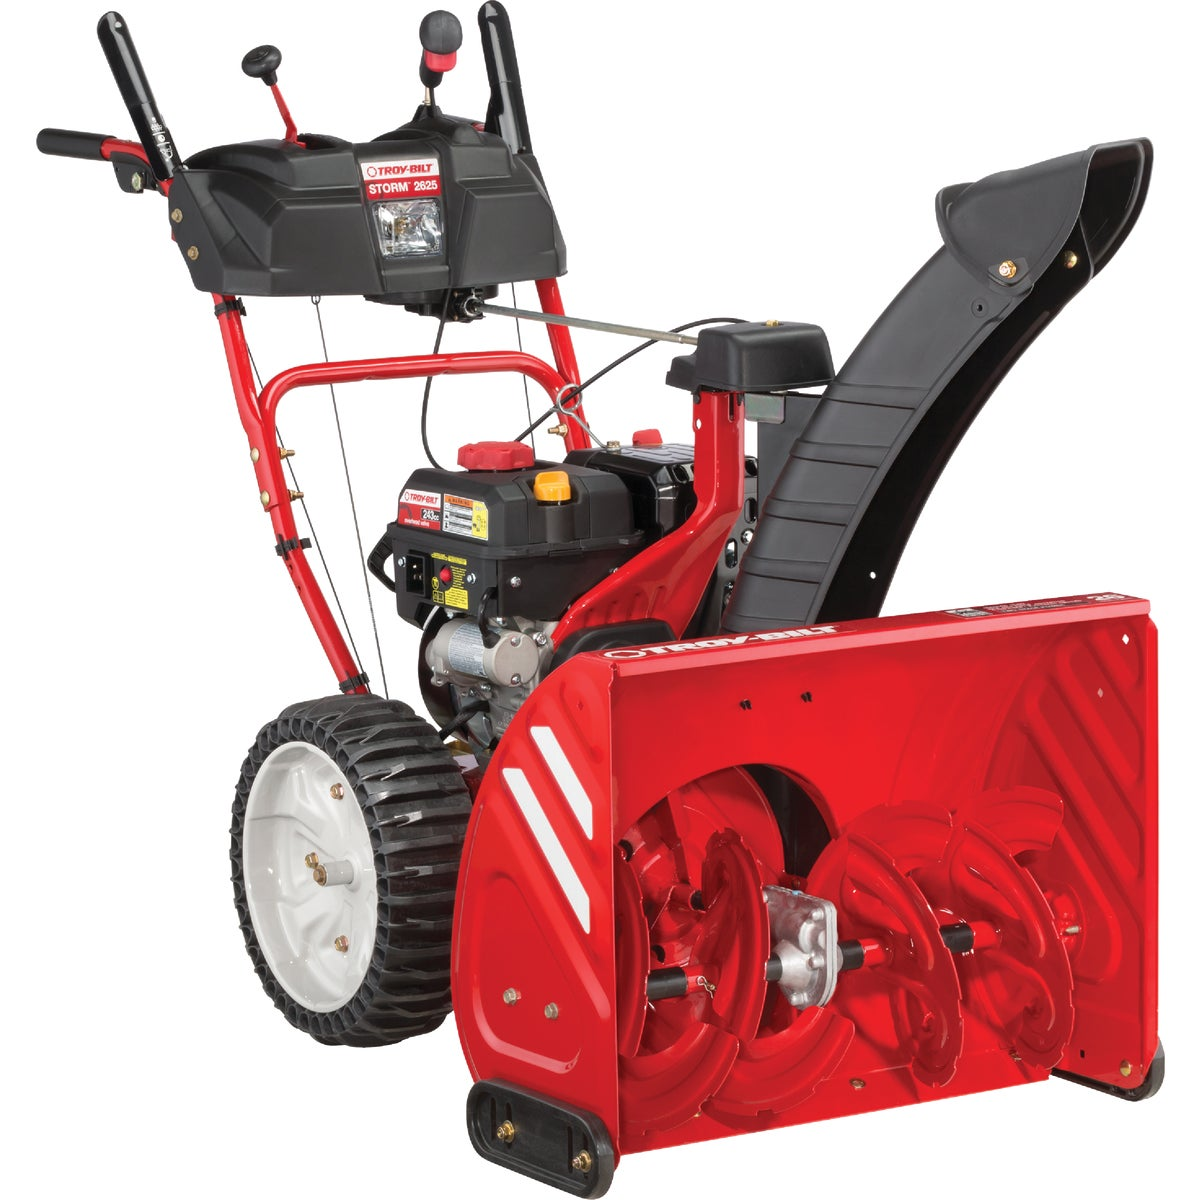 26' 4-CYCLE SNOWTHROWER